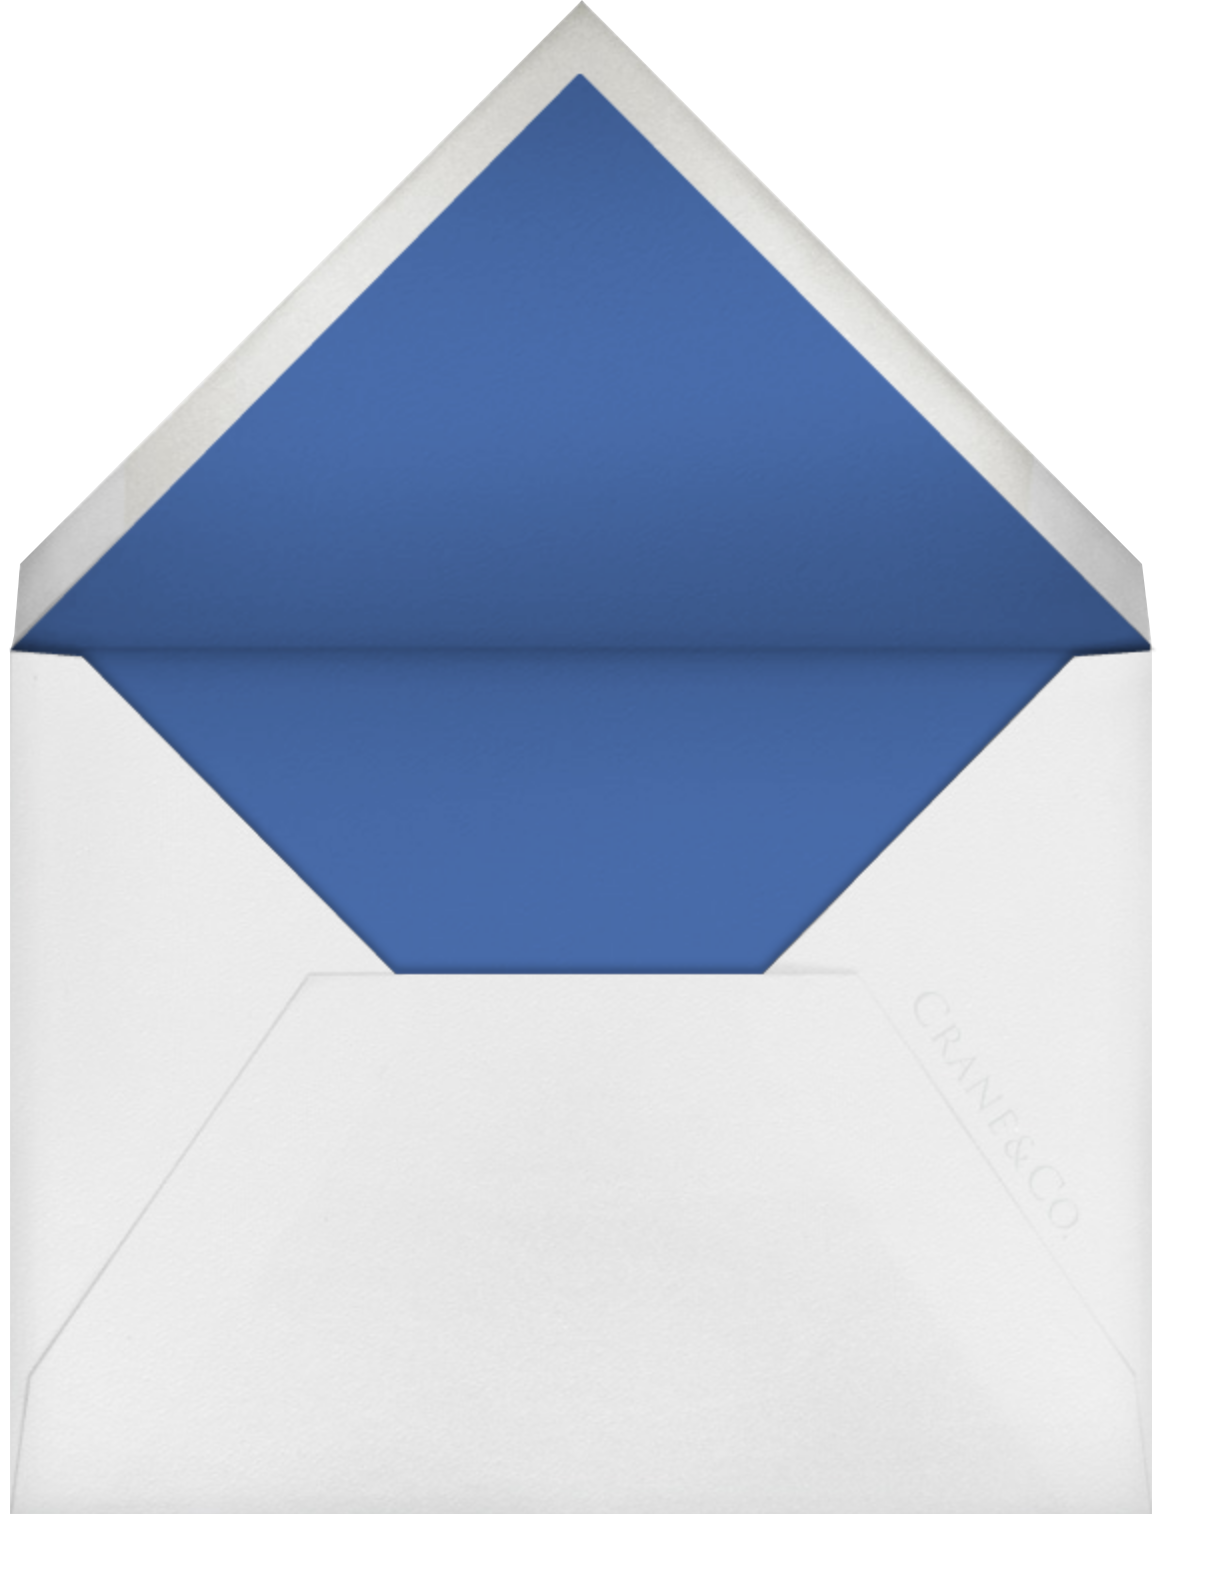 Cheverny (Save The Date) - Regent Blue - Crane & Co. - Save the date - envelope back